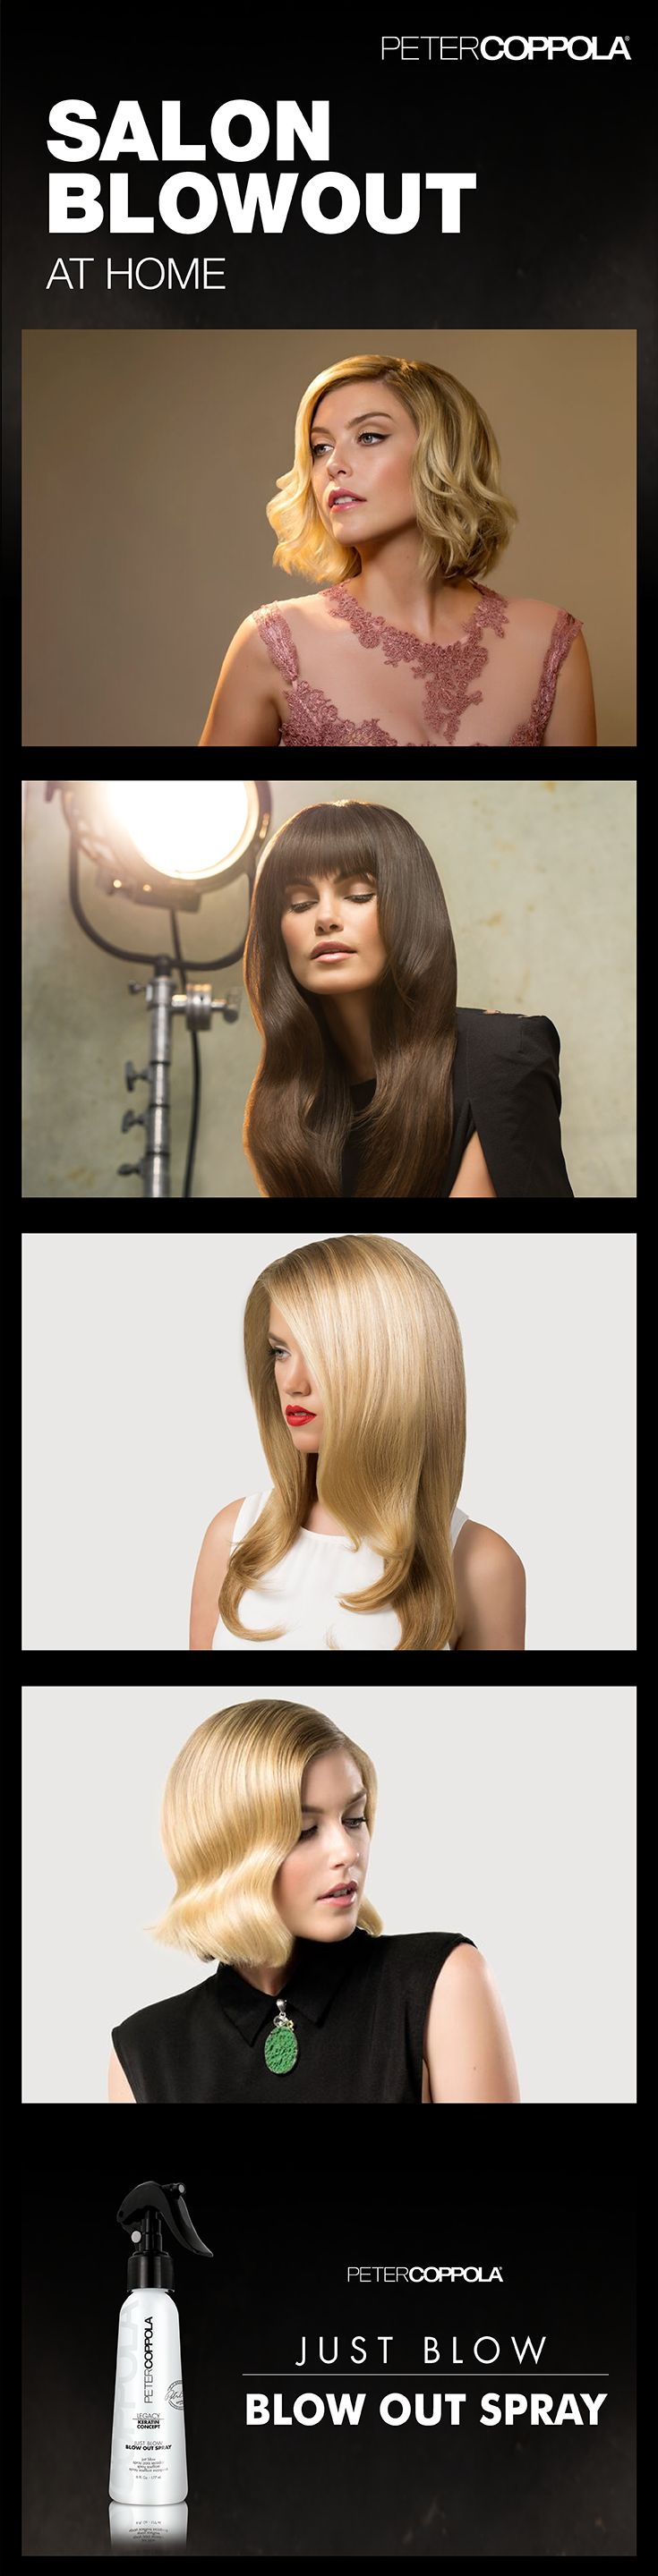 Heat activated keratin leave-in blowout spray can help you perfect your salon blowout style at home.  With serious frizz fighting properties, it gives the finish of a keratin treatment.  Just Blow - Coppola Keratin Blowout Spray can be viewed here https://www.petercoppola.com/just-blow-blow-out-spray/?utm_source=Pinterest&utm_medium=PromotedPin&utm_term=blowoutterms&utm_campaign=Just%20Blow%208%2F6%2F15